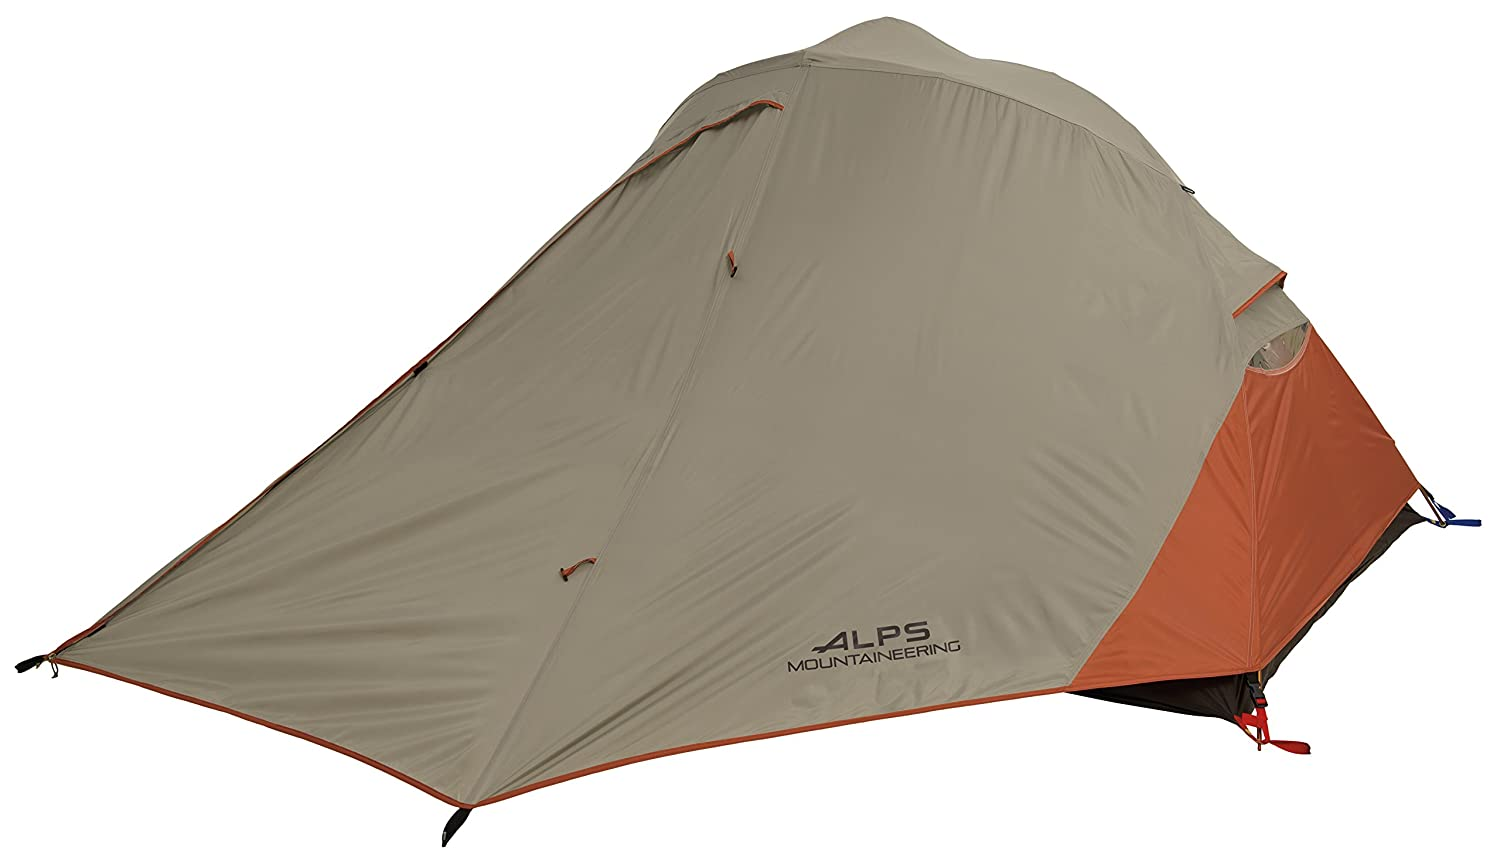 Amazon.com  ALPS Mountaineering Extreme 3-Person Tent  Family Tents  Sports u0026 Outdoors  sc 1 st  Amazon.com & Amazon.com : ALPS Mountaineering Extreme 3-Person Tent : Family ...